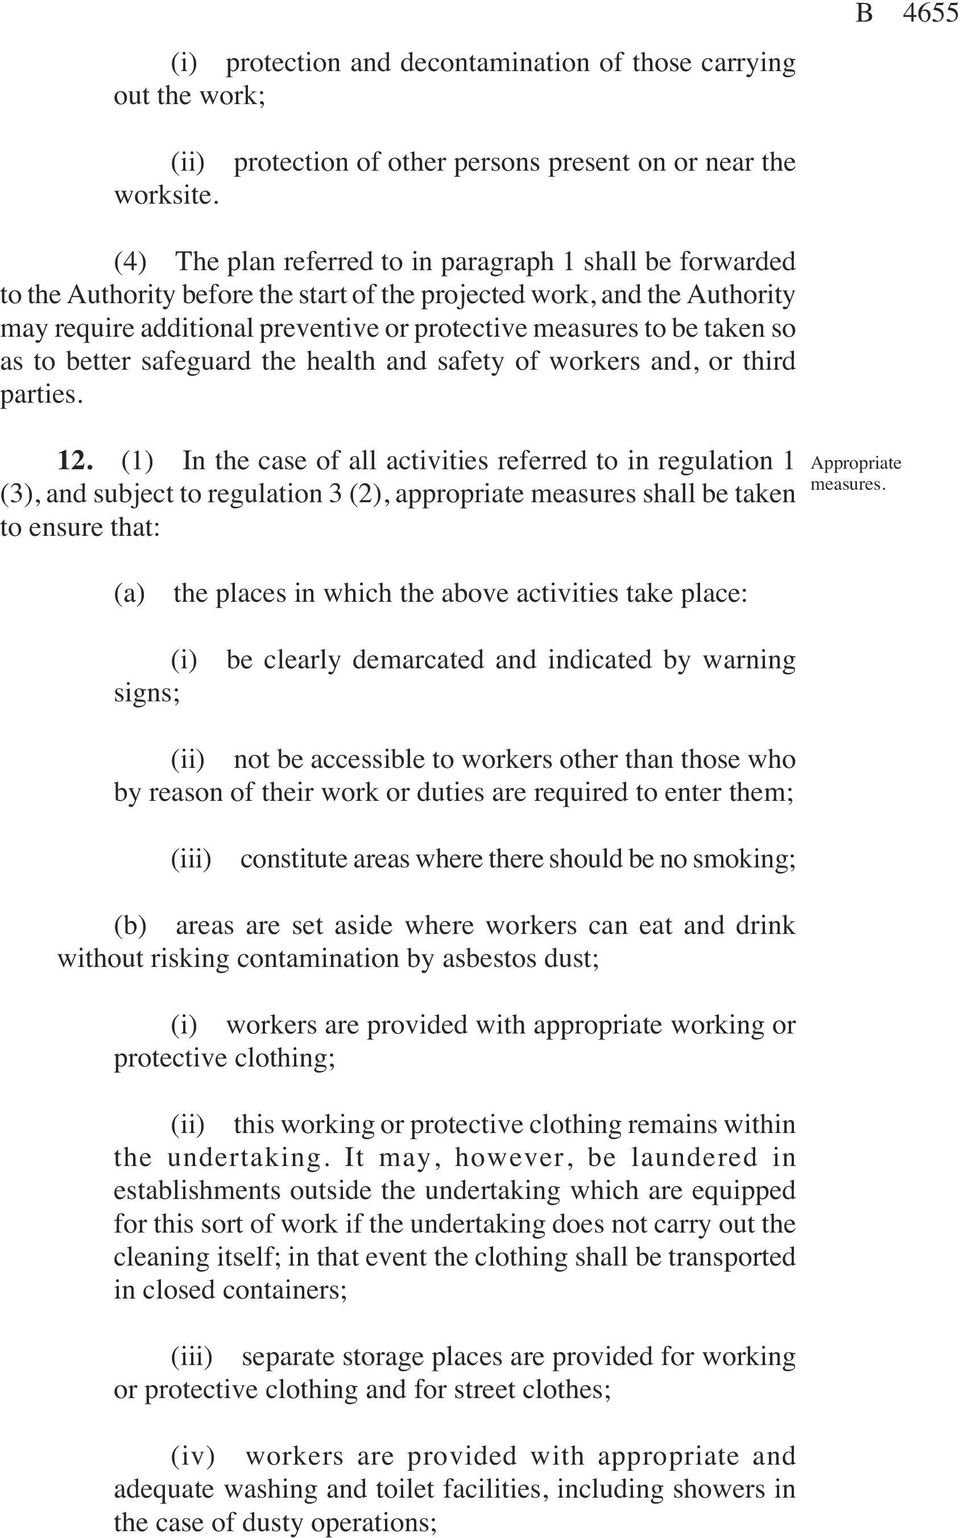 additional preventive or protective measures to be taken so as to better safeguard the health and safety of workers and, or third parties. 12.